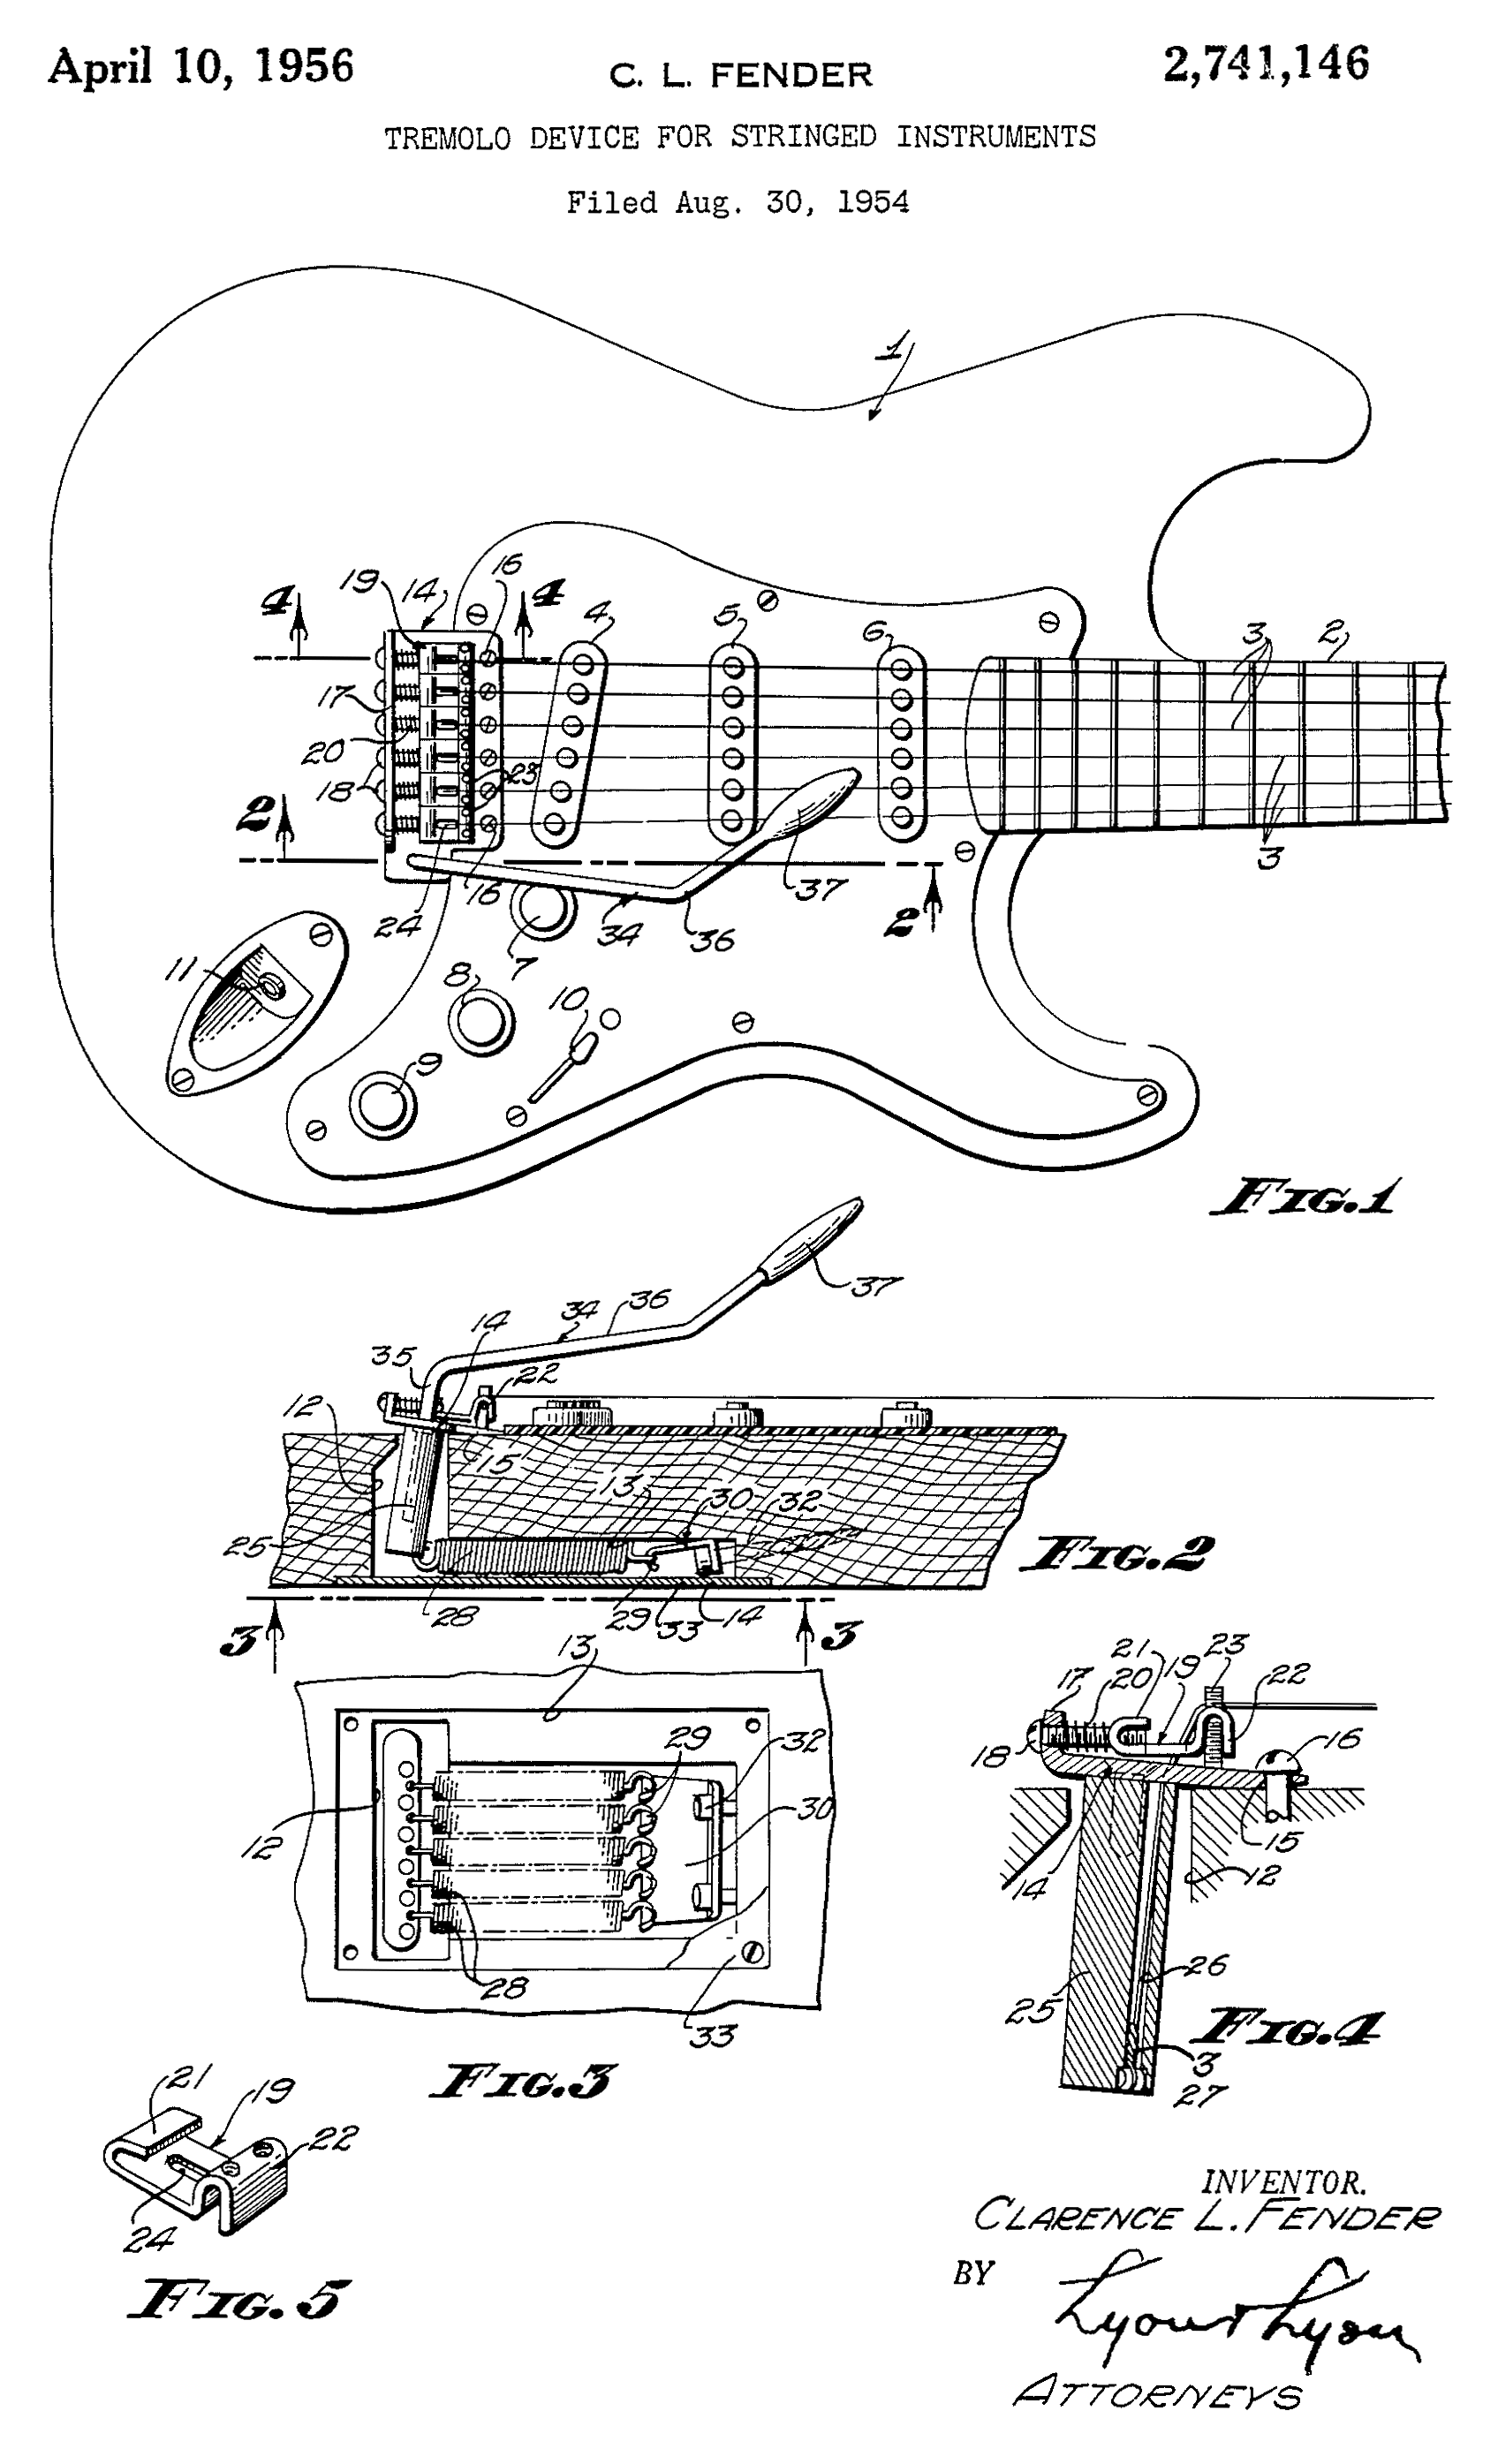 File:FenderTremoloPatentDiagram on Fender Telecaster Wiring Diagram